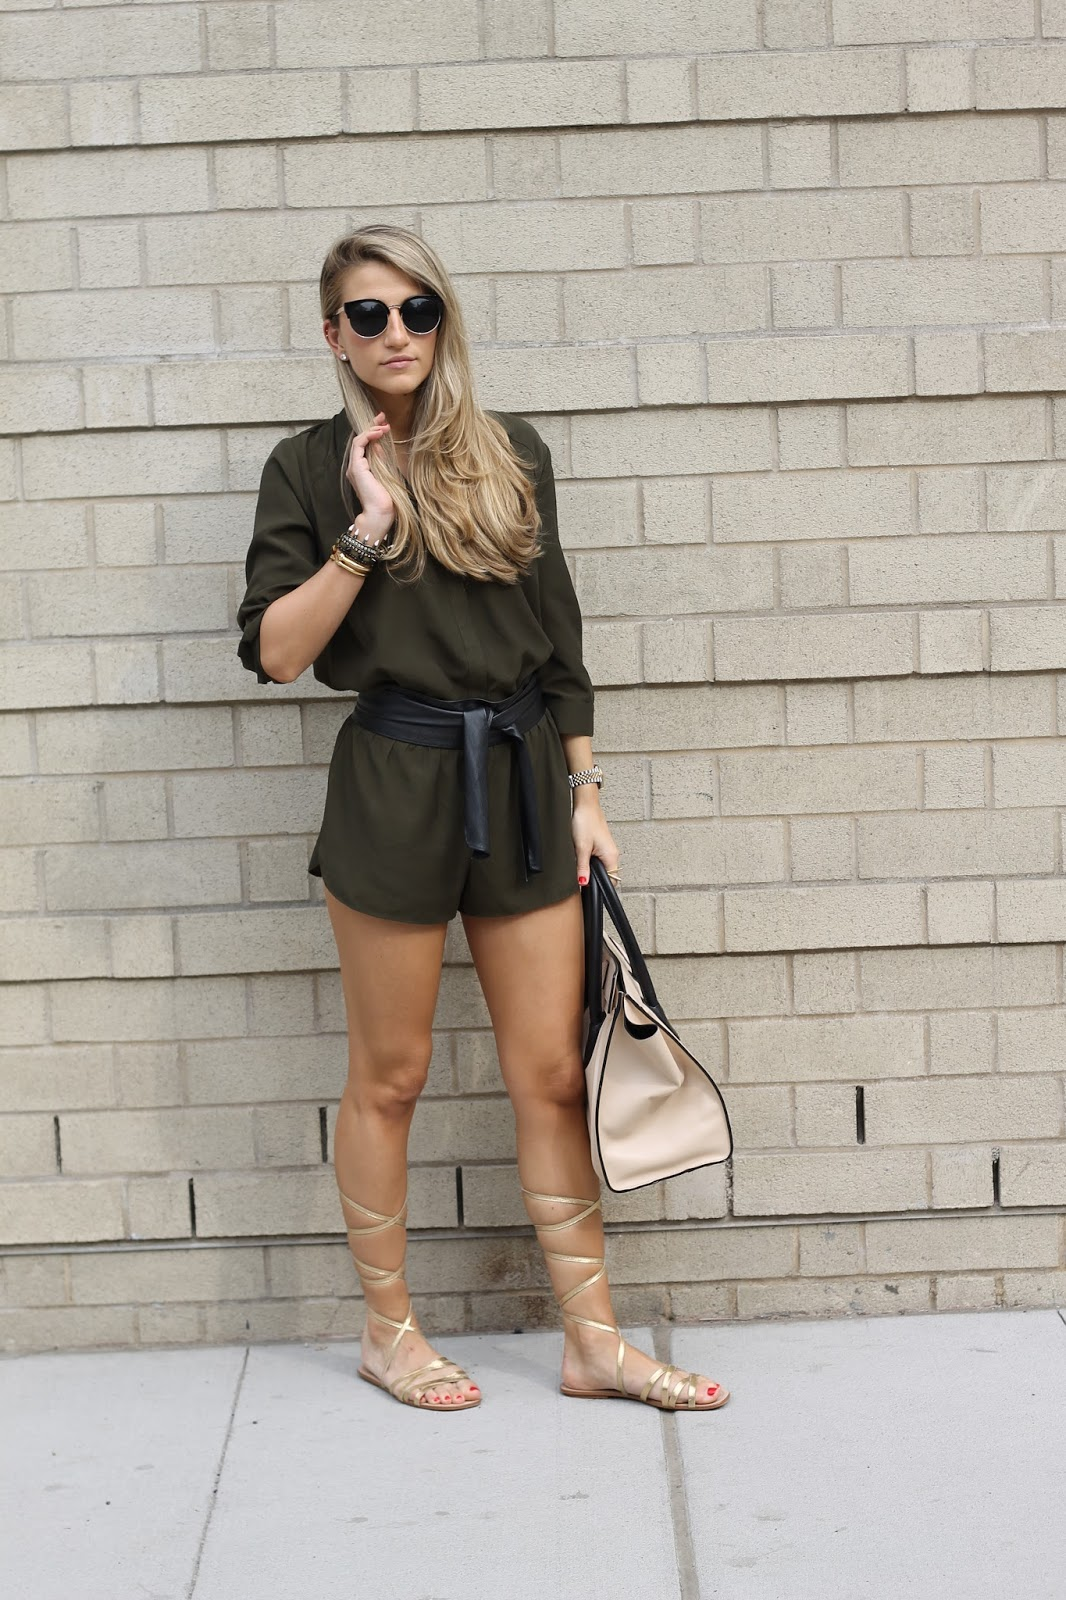 Forever21 Olive Utility Romper, Black leather Sash Belt, Splendid Tayler Lace up Gladiator Sandals, Forever21 Sunglasses, Celine Luggage Tote